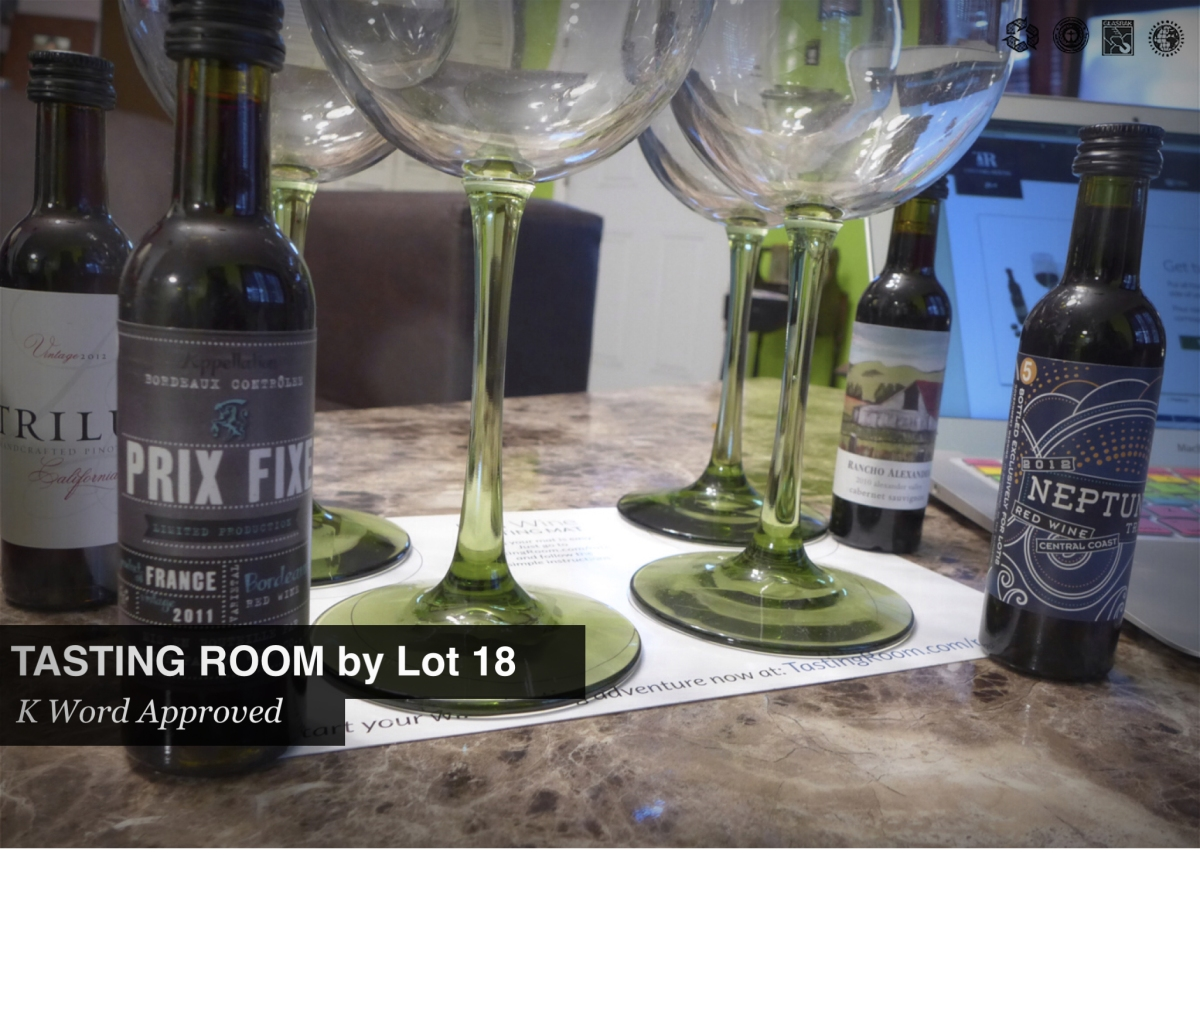 KWord Approved: Tasting Room by Lot18